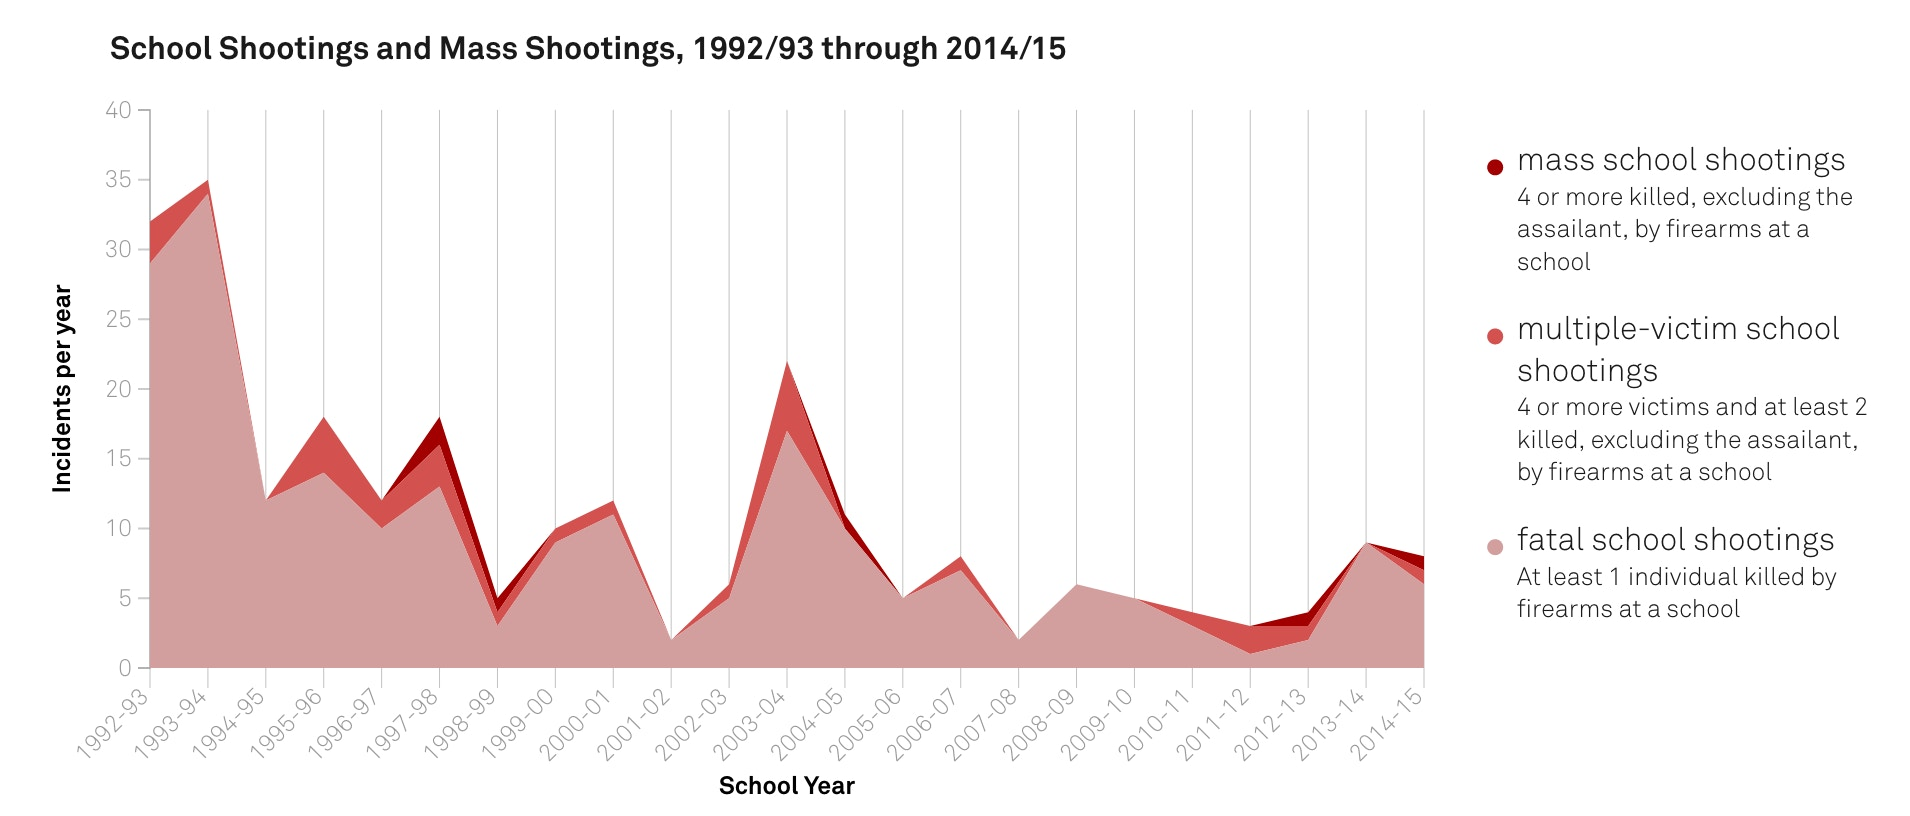 School Shootings Have Declined, So Why Militarize Schools?